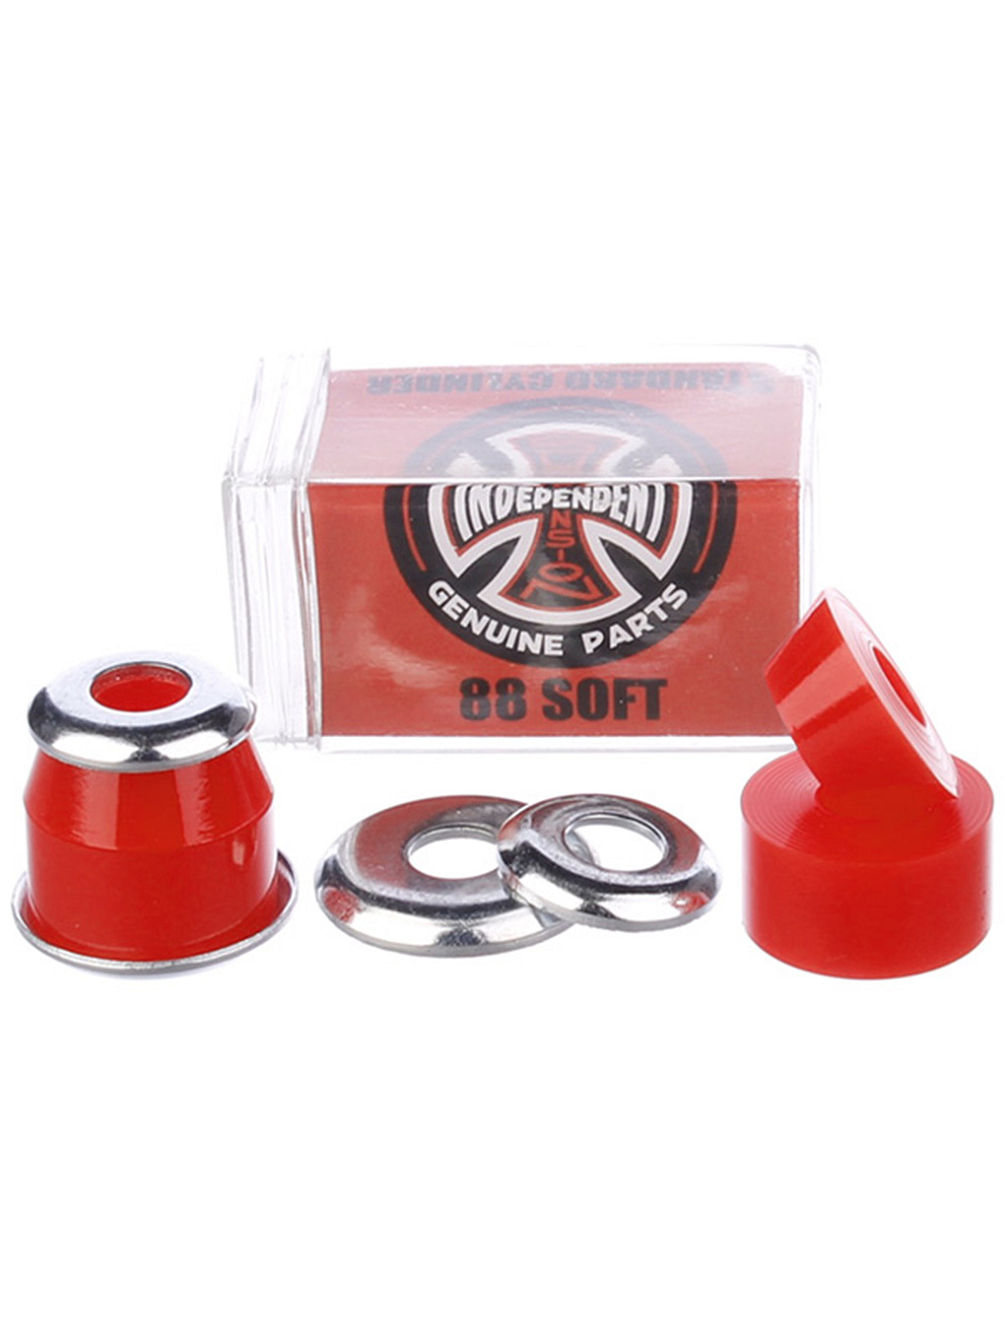 Standard Cylinder Soft 88A Bushings